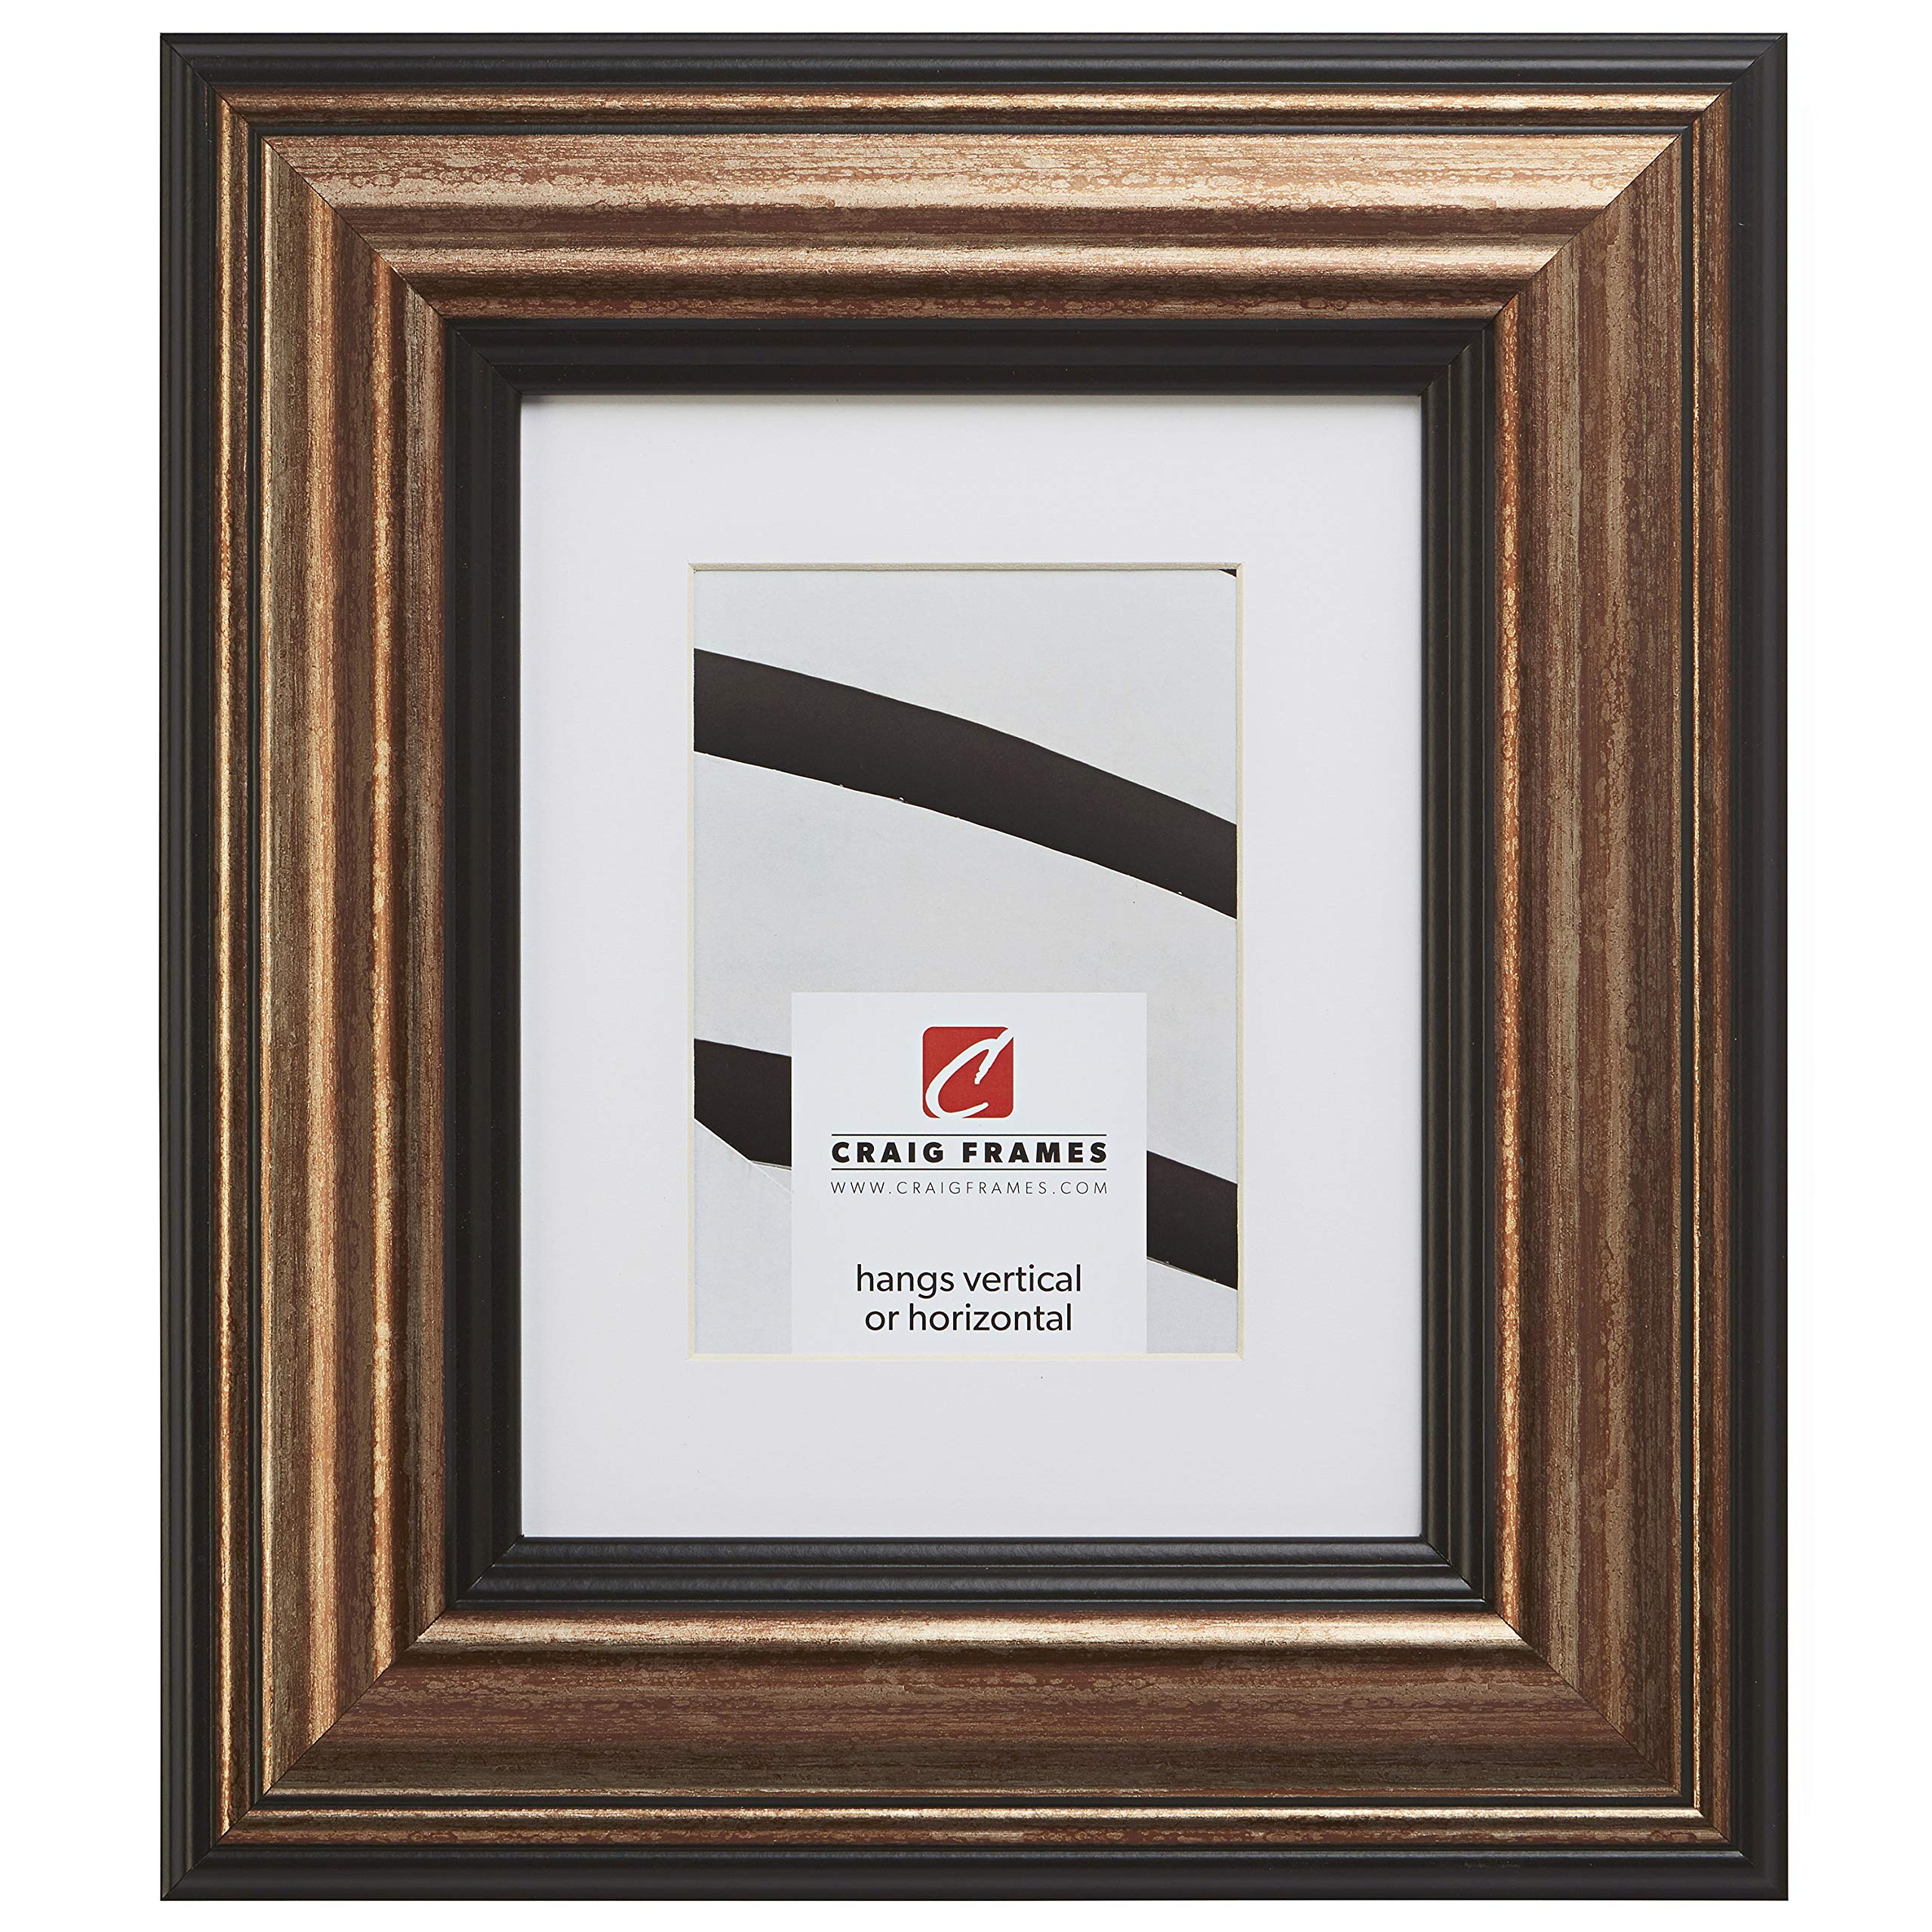 Craig Frames 21307201 24 x 36 Inch Aged Copper and Black Picture Frame Matted to Display a 20 x 30 Inch Photo